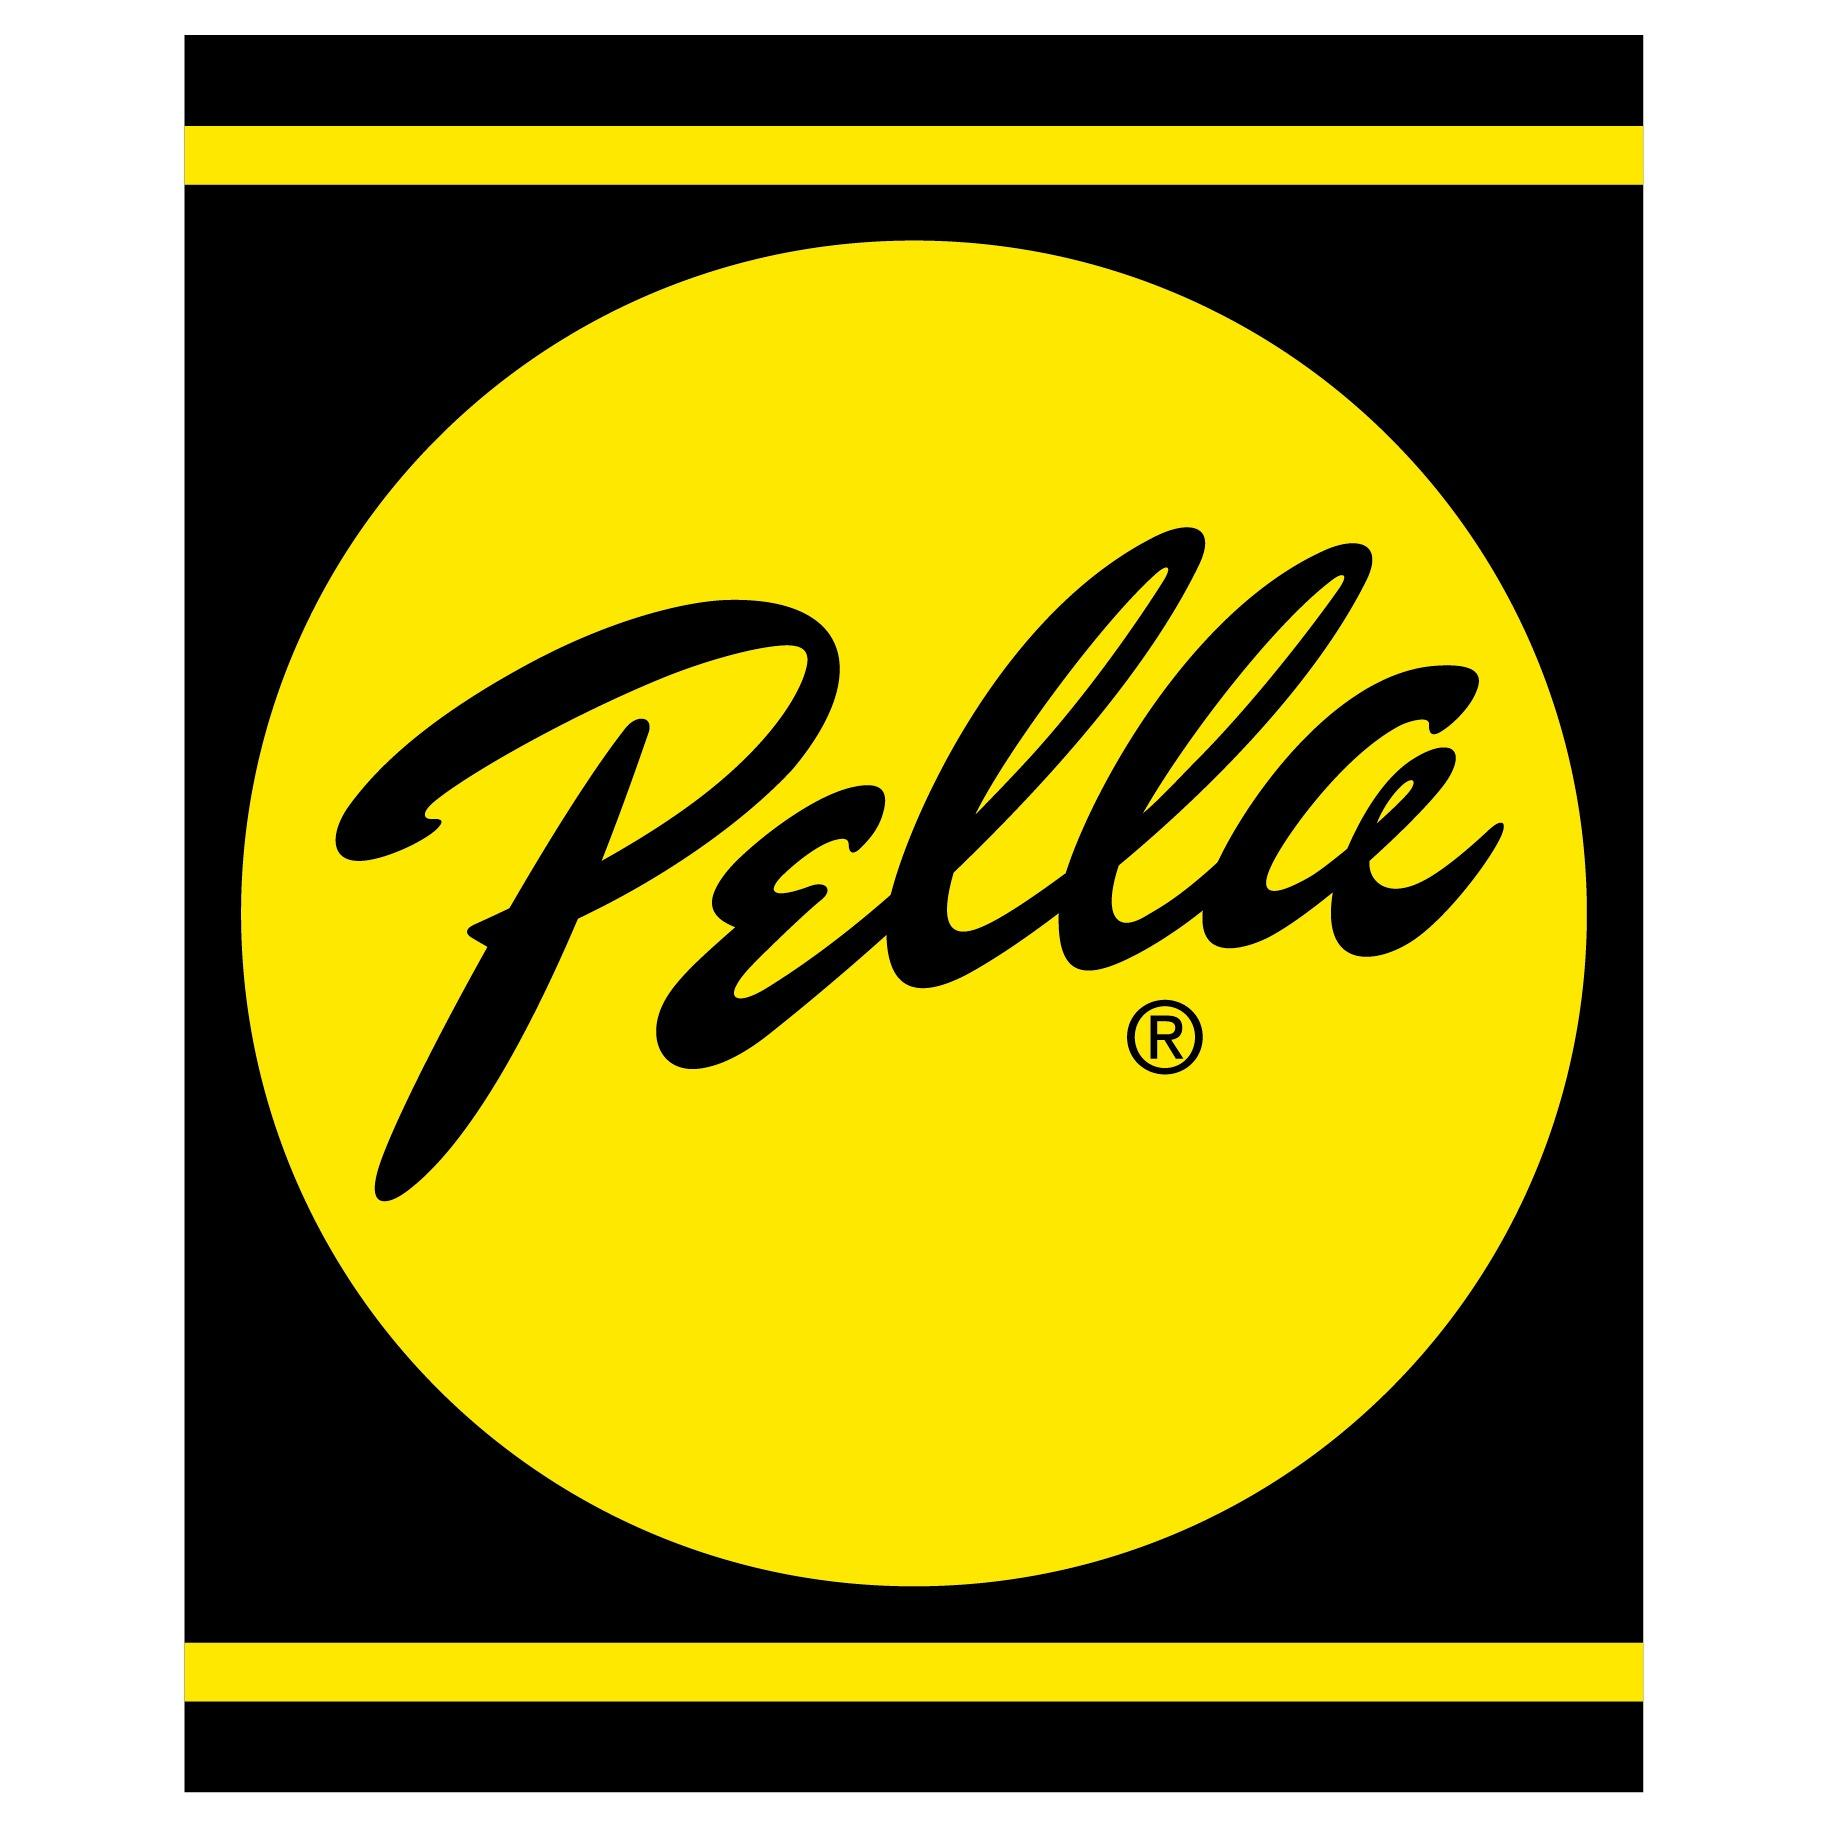 Pella Windows and Doors of Shrewsbury